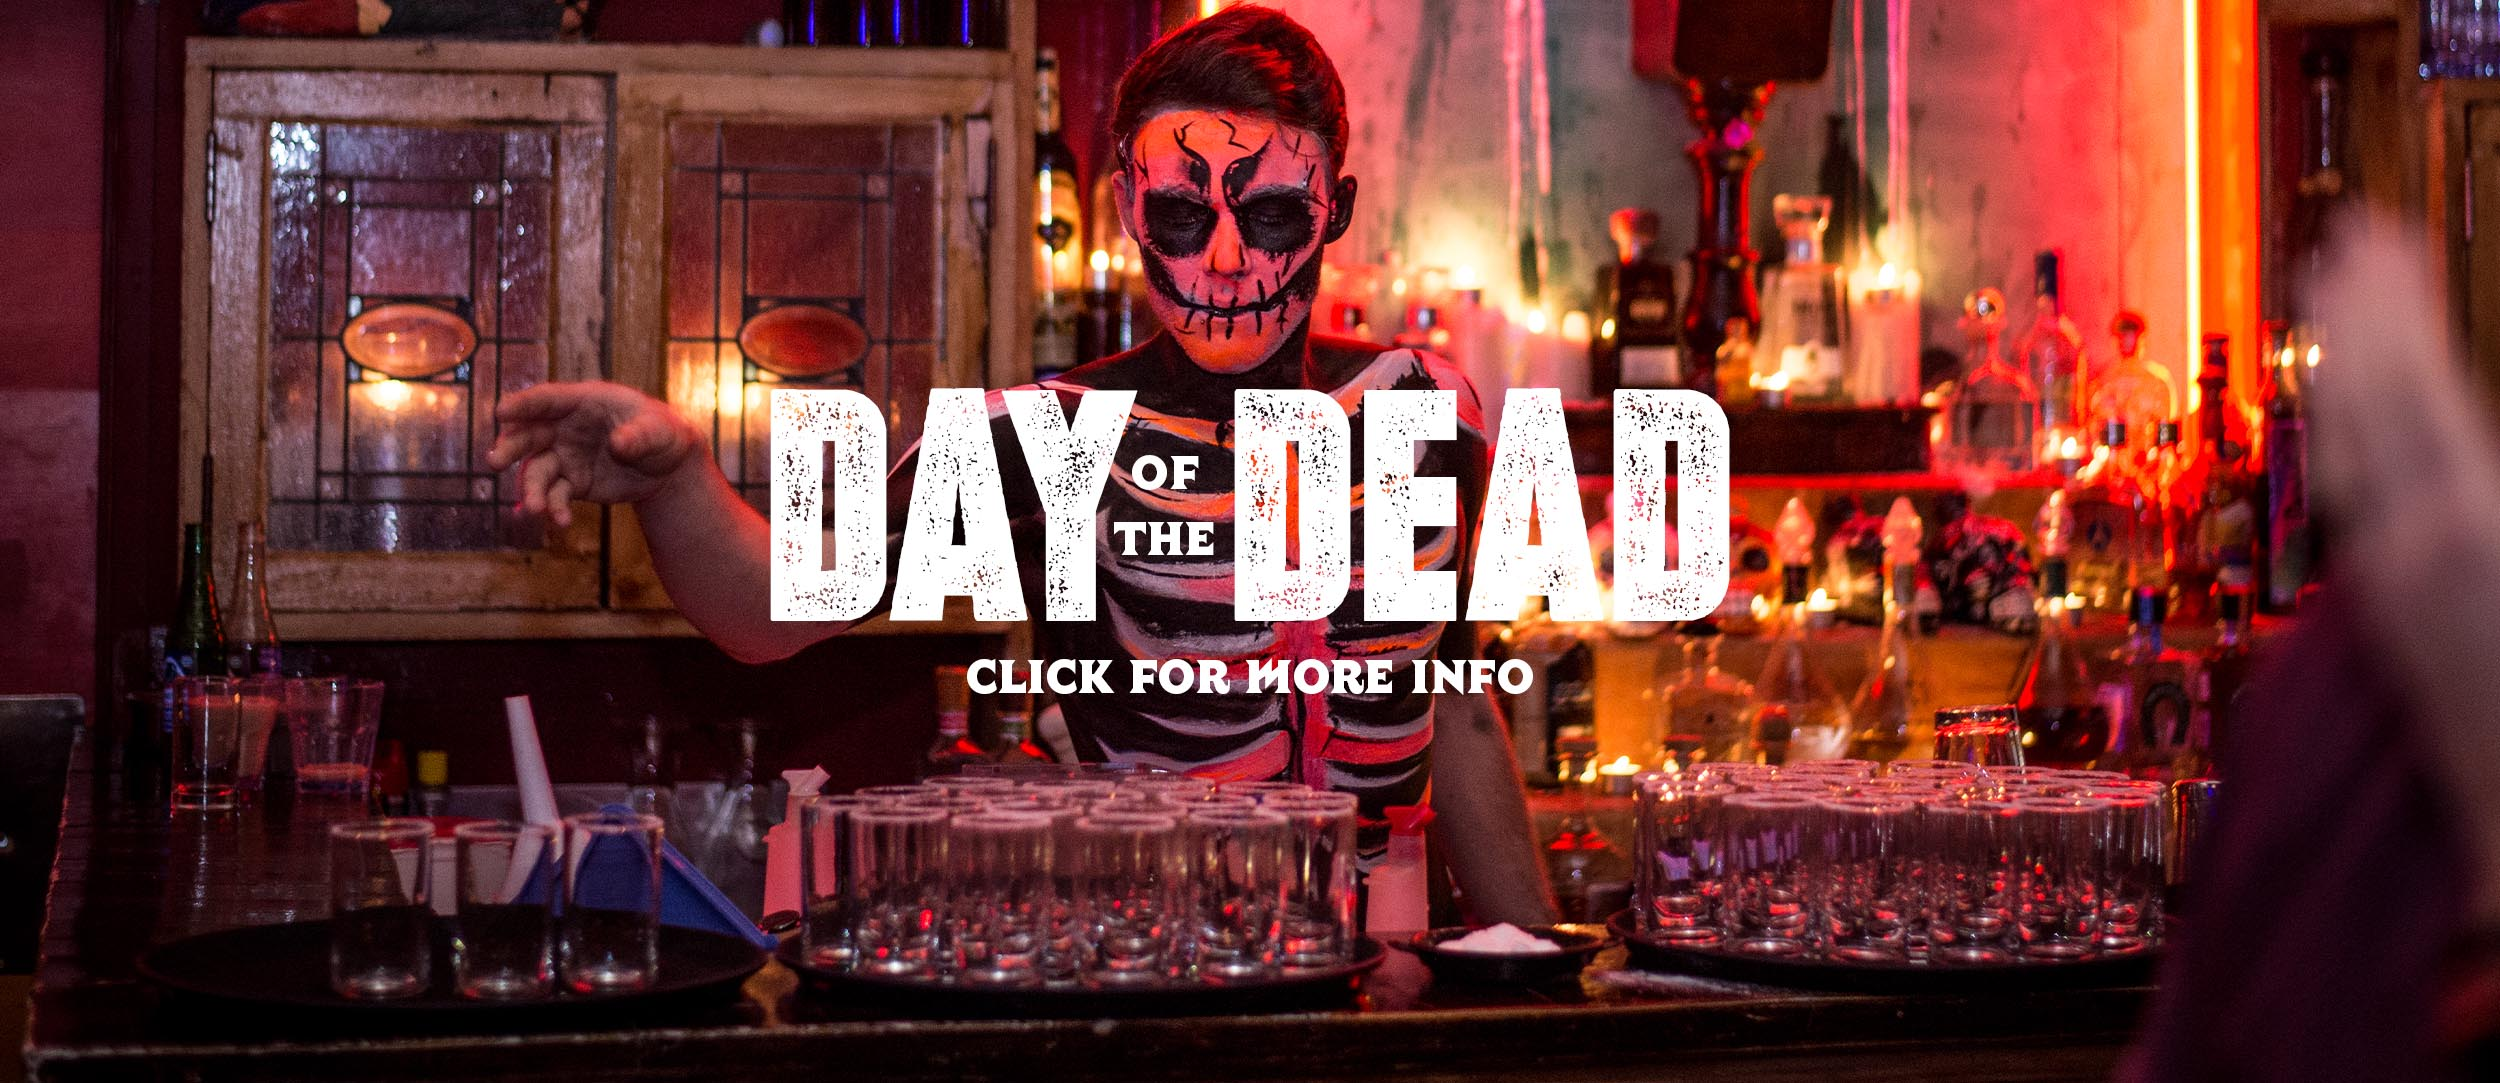 MEX_website_banner_Skeleton_.jpg